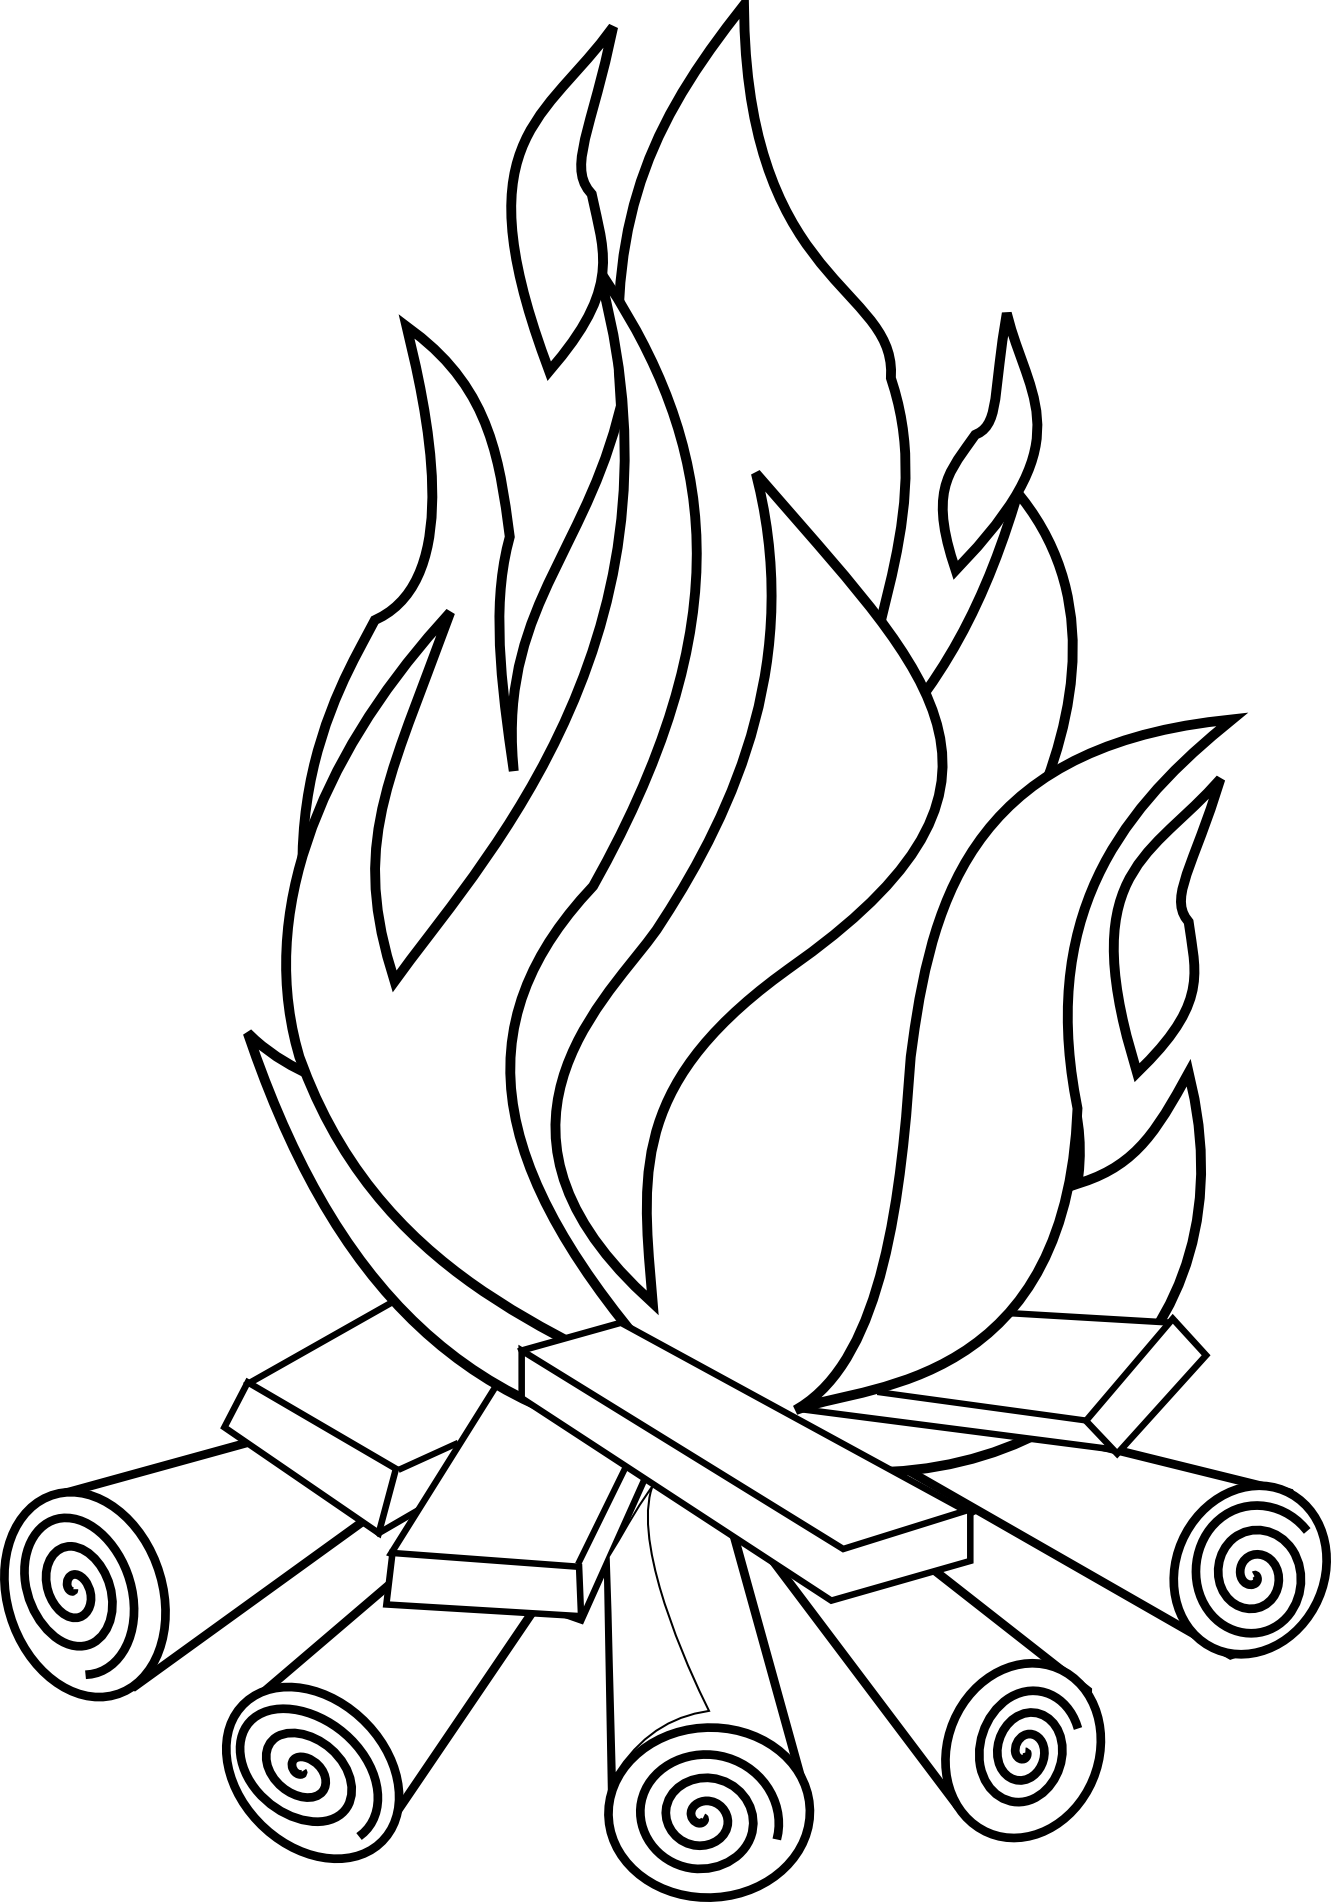 Clipart fire black and white, Clipart fire black and white.